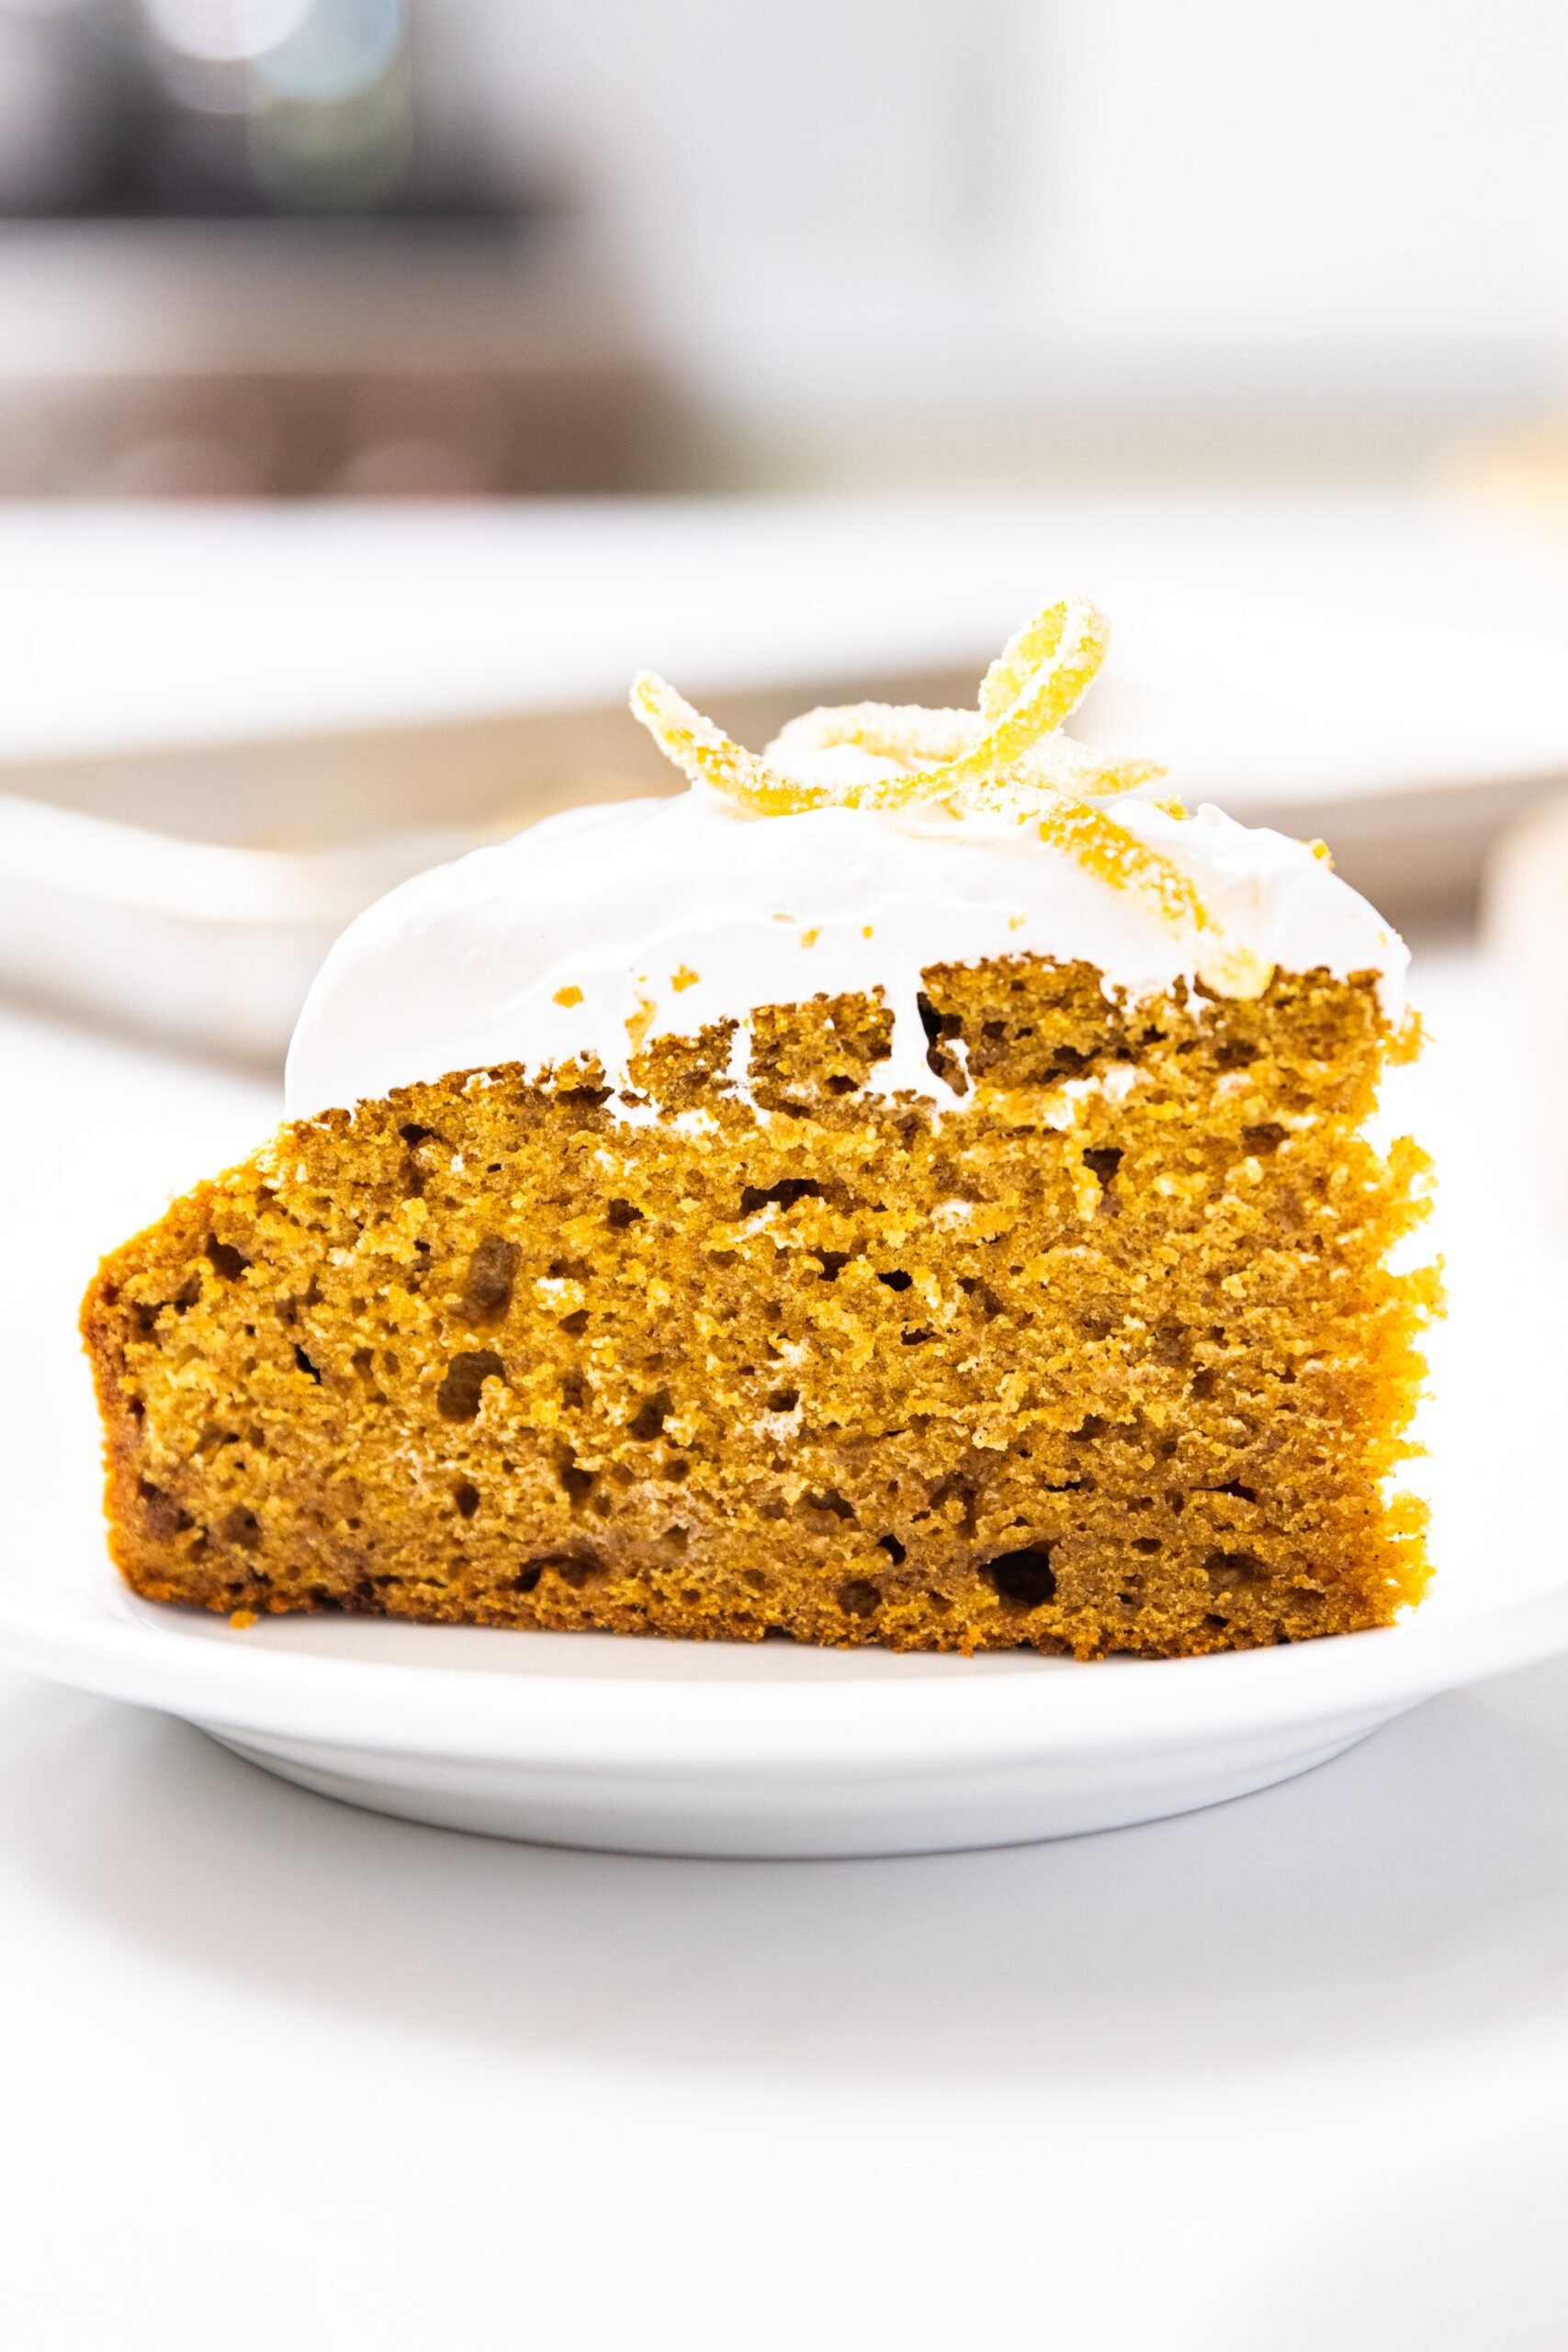 Close up side view of pumpkin applesauce cake topped with whipped topping and candied orange zest pieces